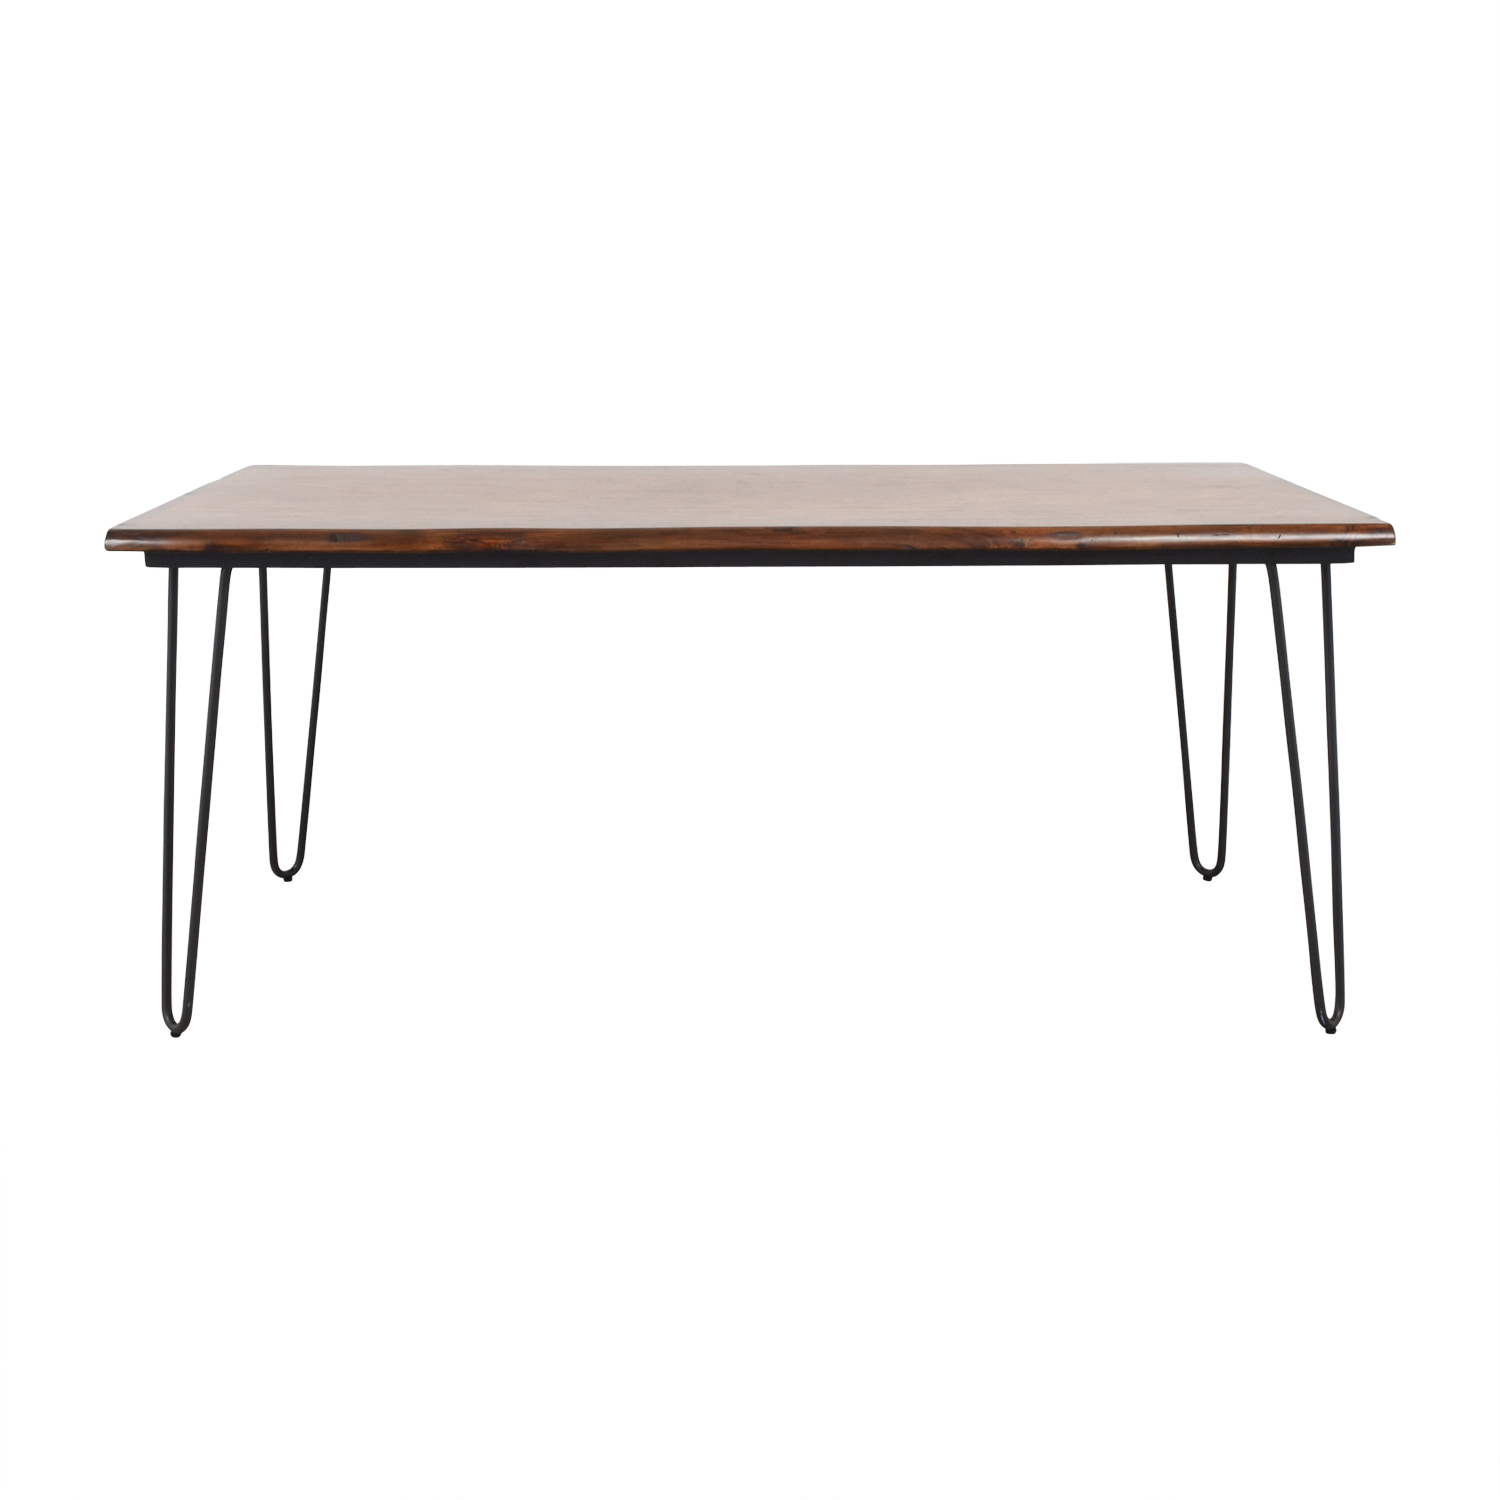 World Market World Market Wood Flynn Hairpin Dining Table price